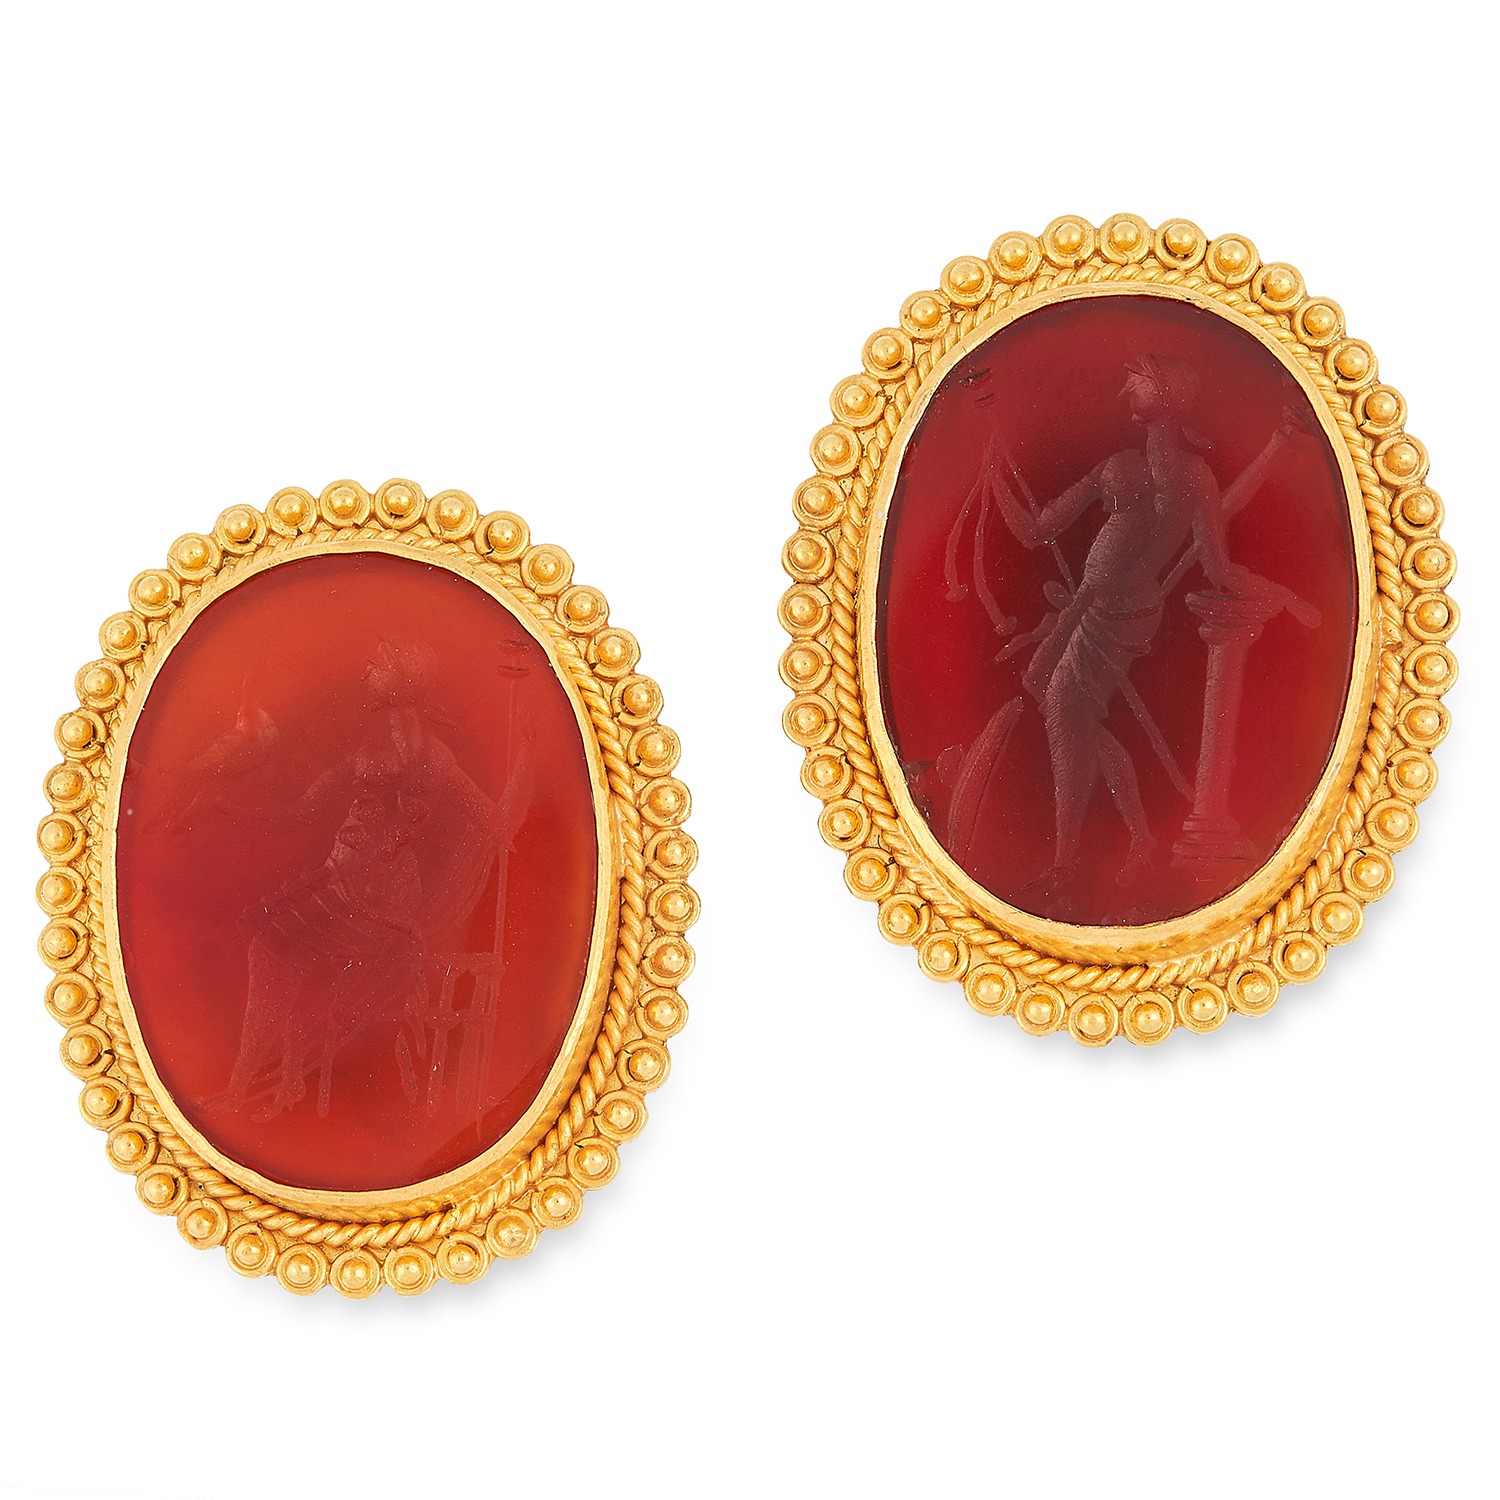 A PAIR OF GRECIAN CARVED HARDSTONE INTAGLIO EARRINGS set with carnelian panels reverse carved to